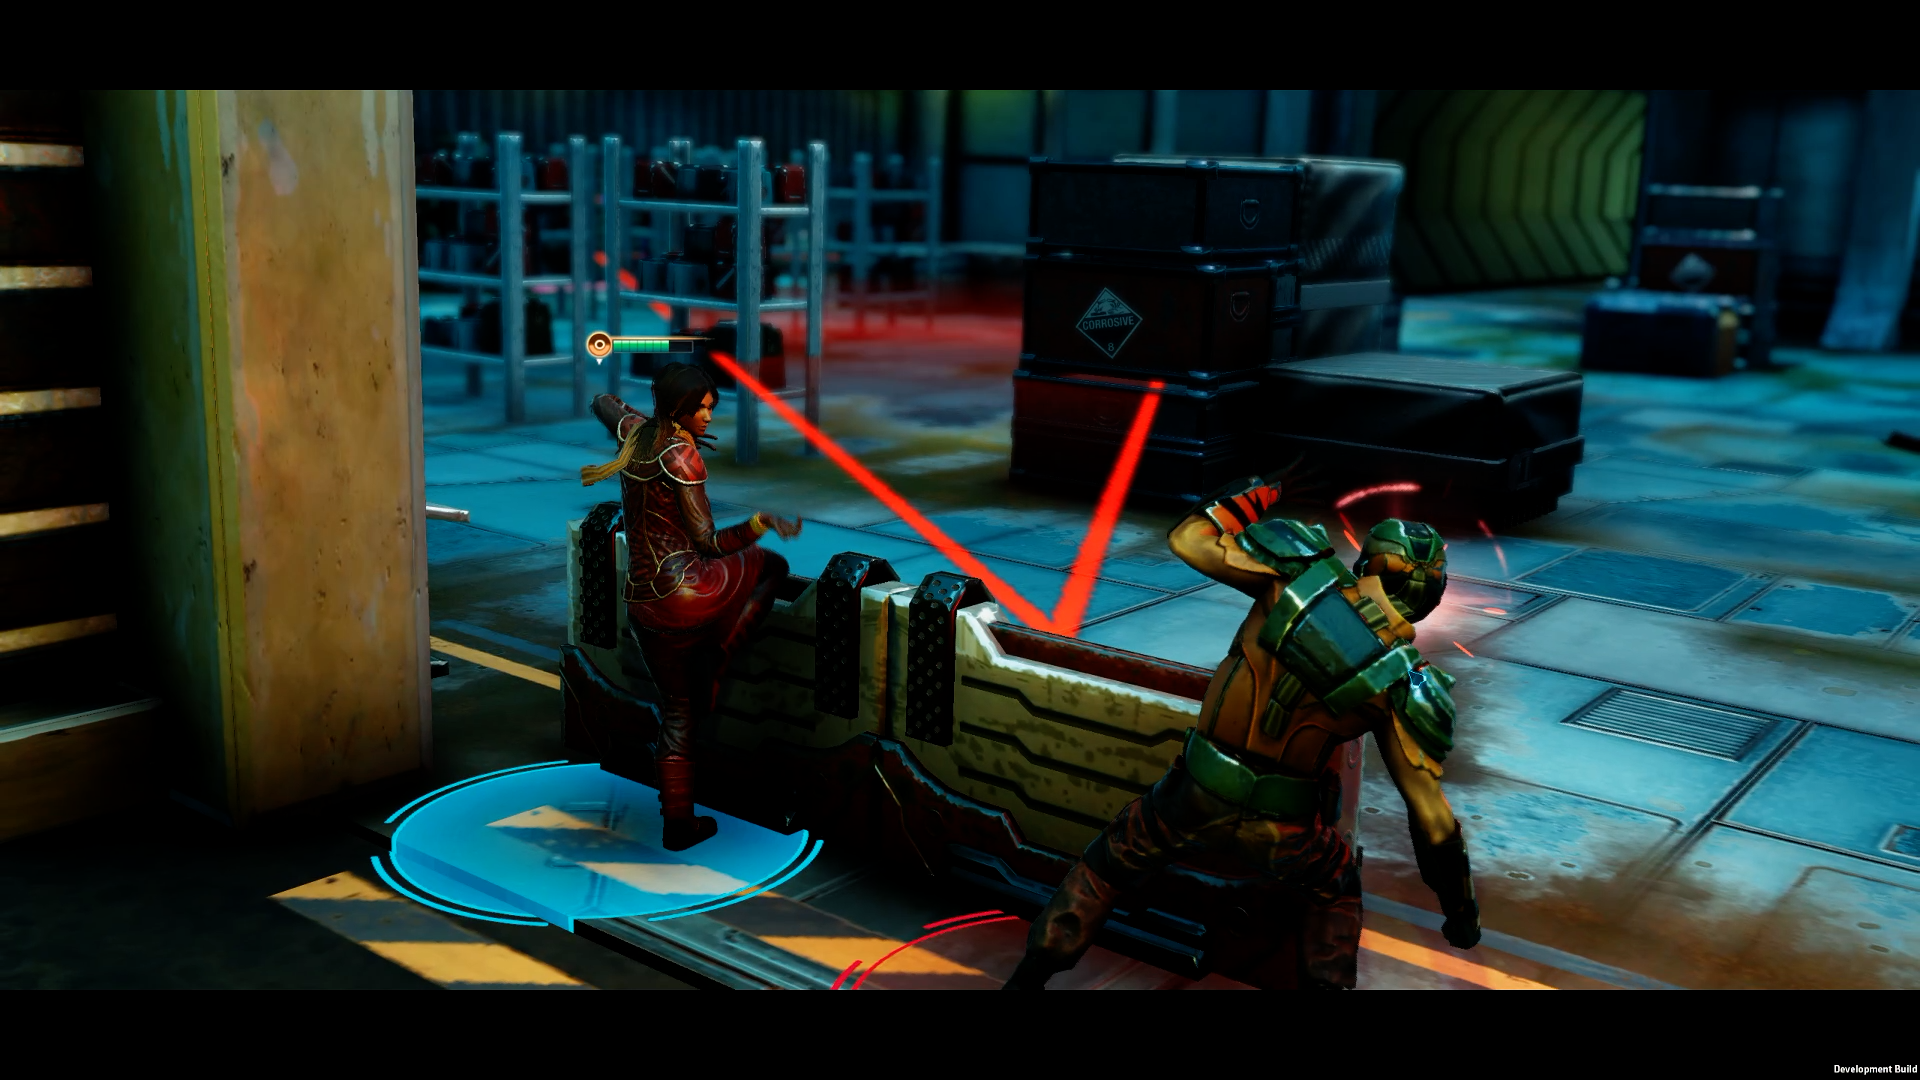 EleSpace_Reveal_Street5 copy.png